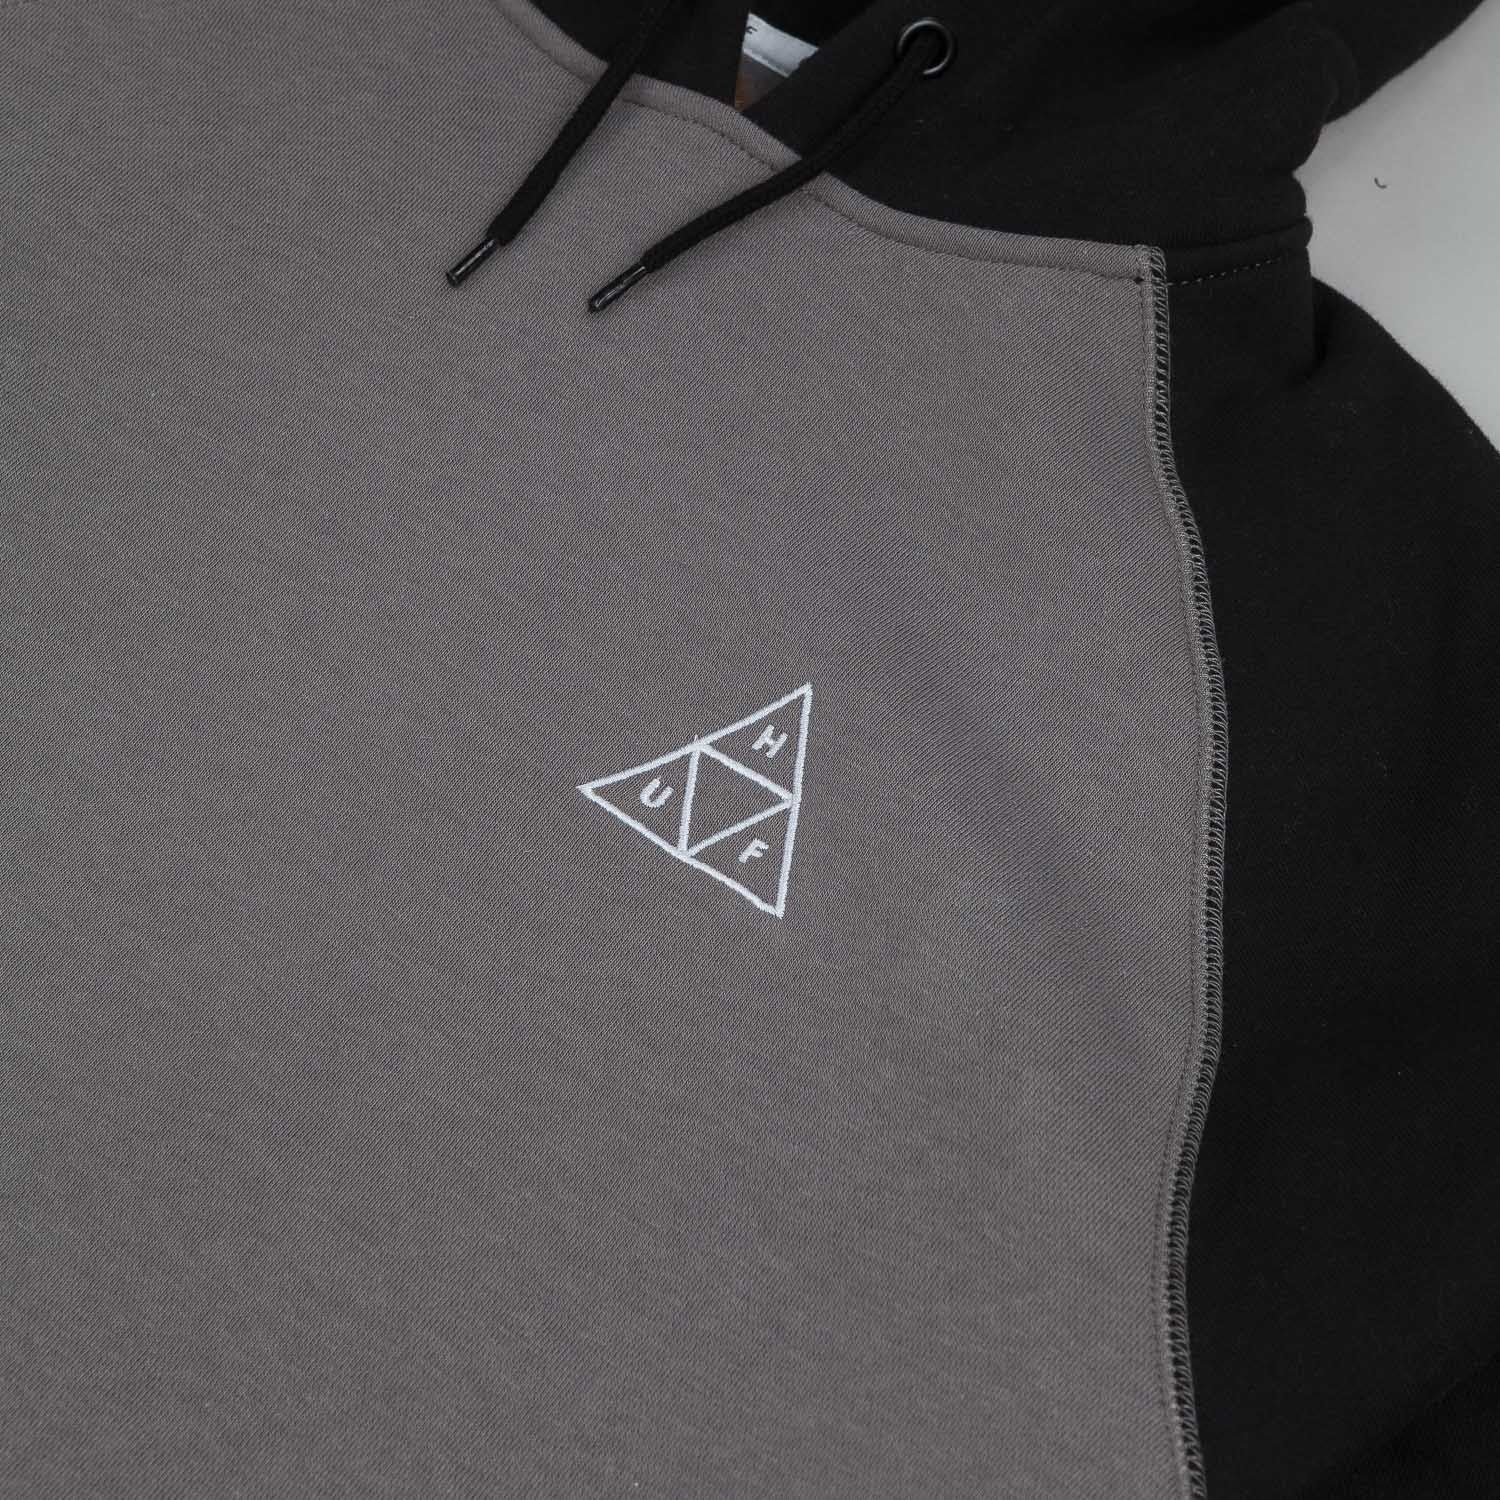 HUF Triple Triangle Raglan Hooded Sweatshirt - Black / Charcoal